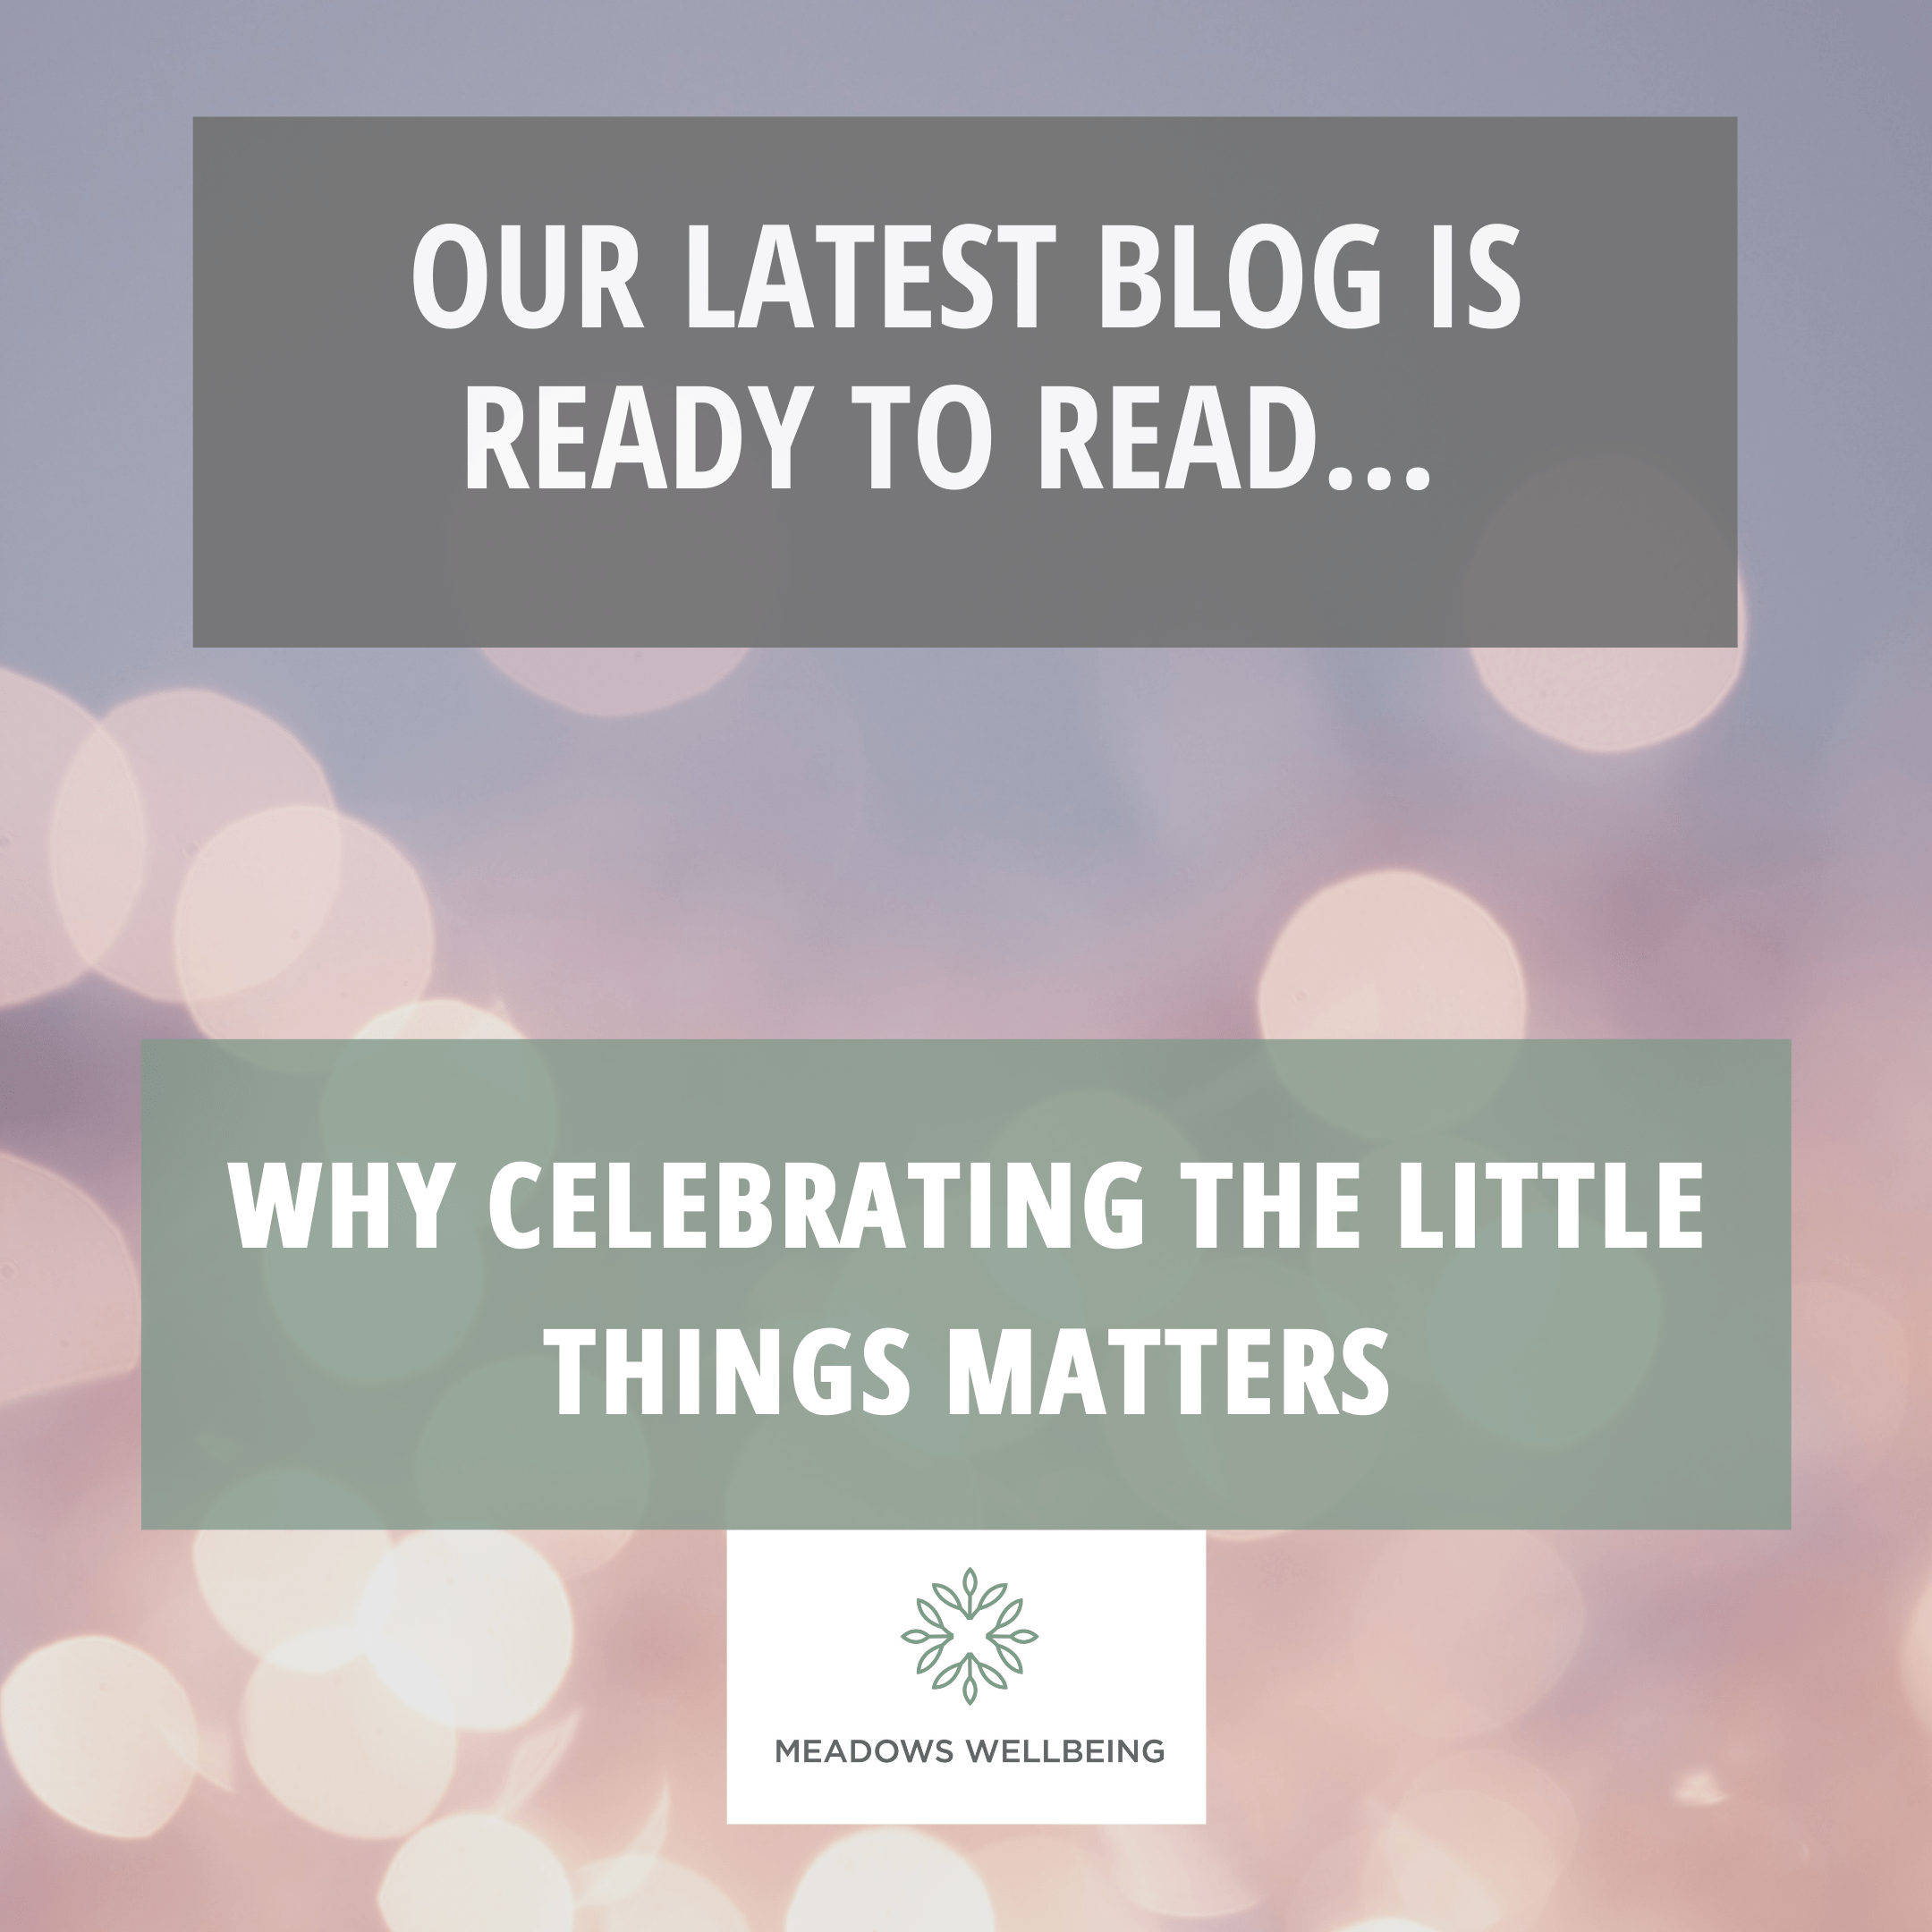 WHY CELEBRATING THE LITTLE THINGS MATTERS